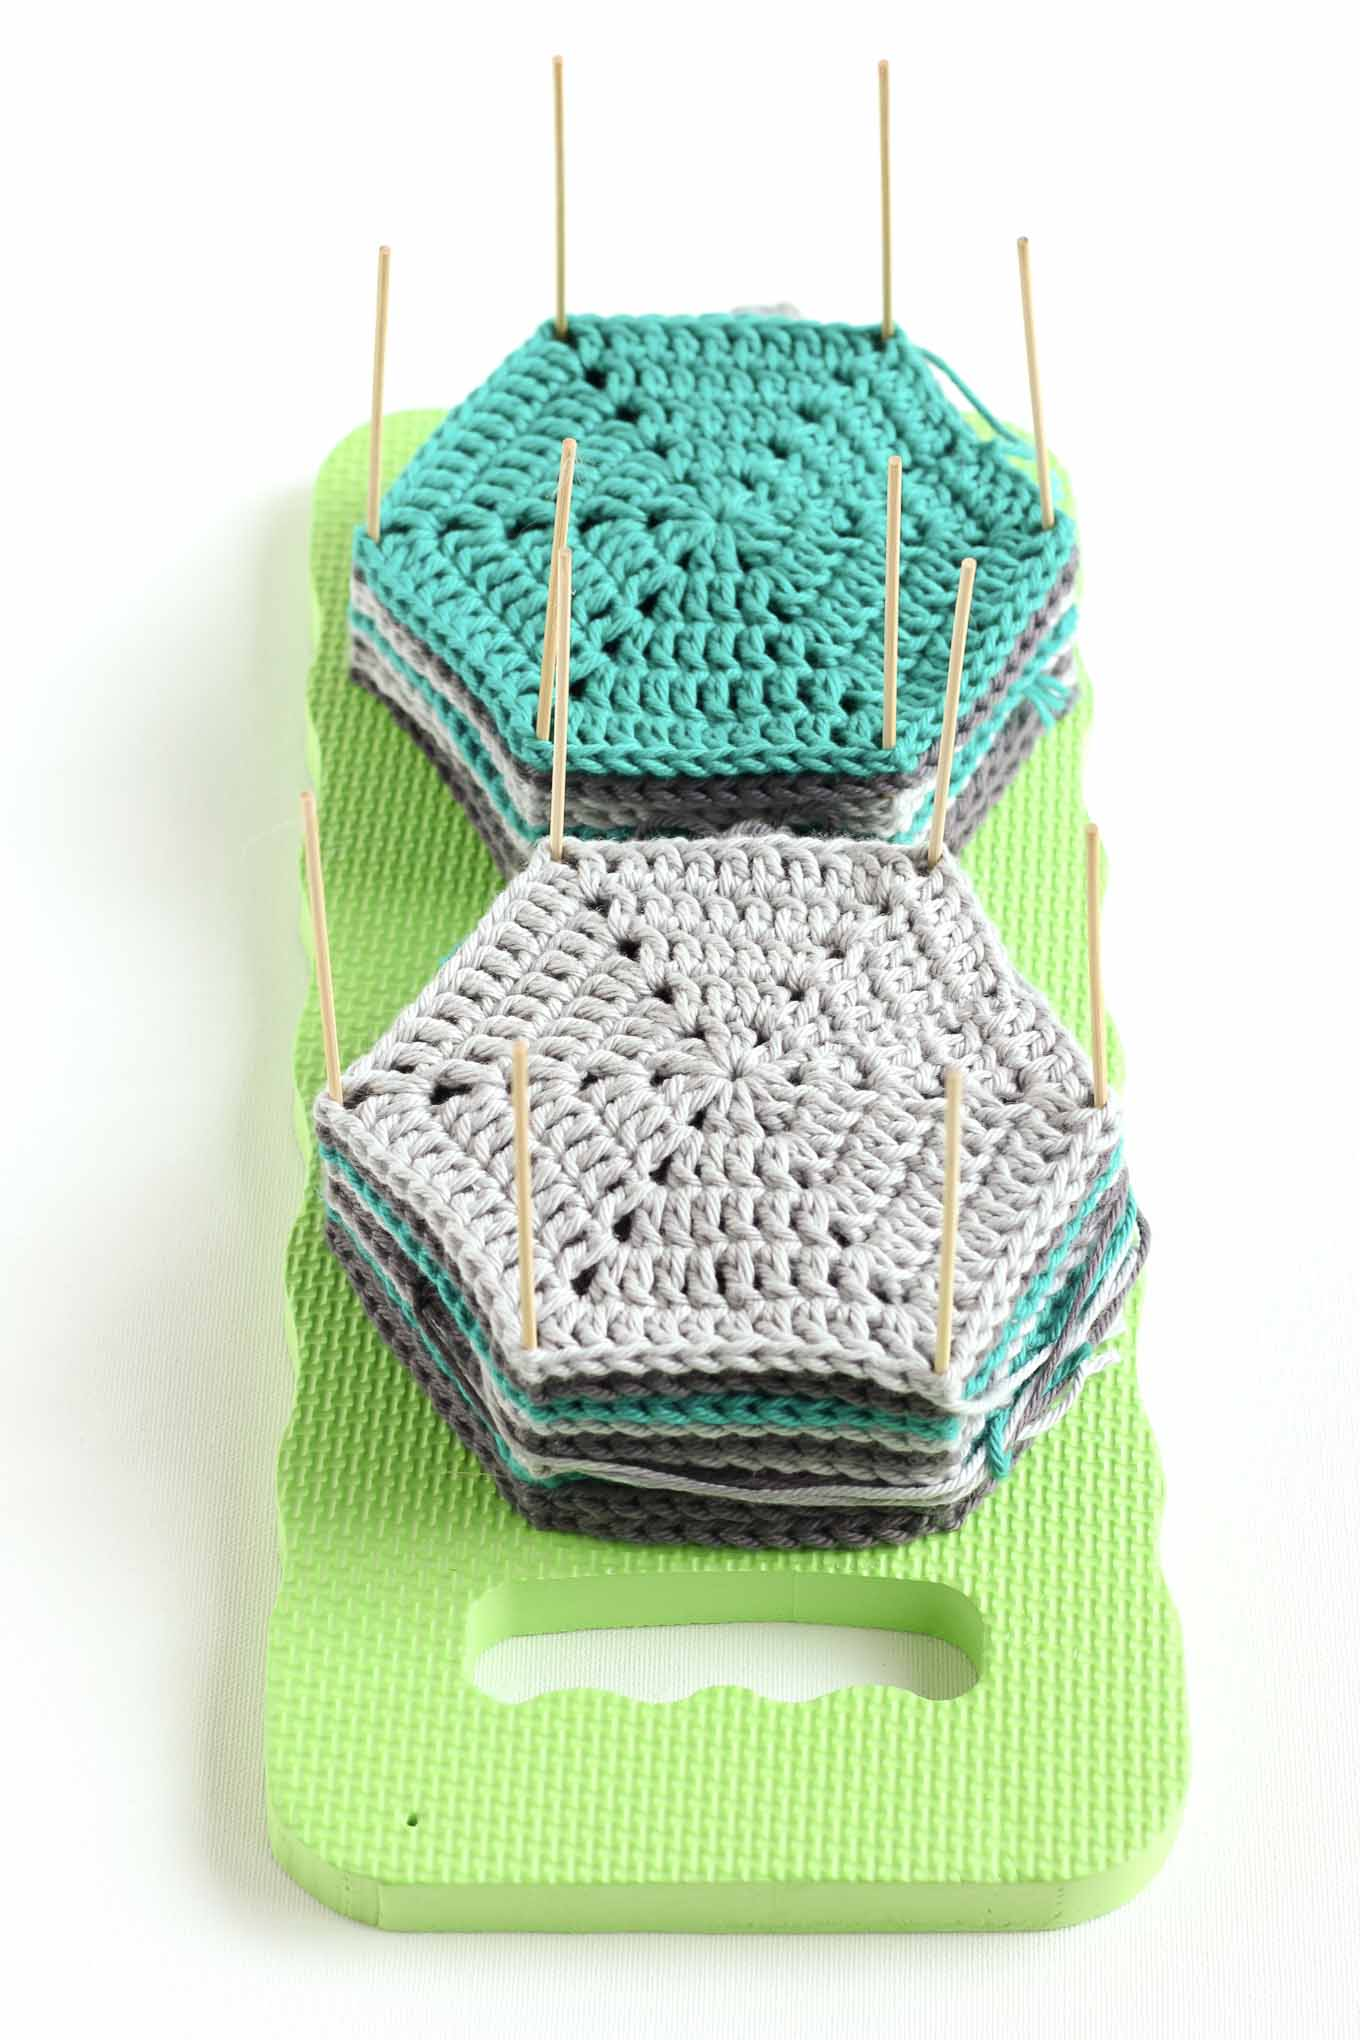 Crocheting Made Easy : crochet or knit hexagons or granny squares with this incredibly easy ...